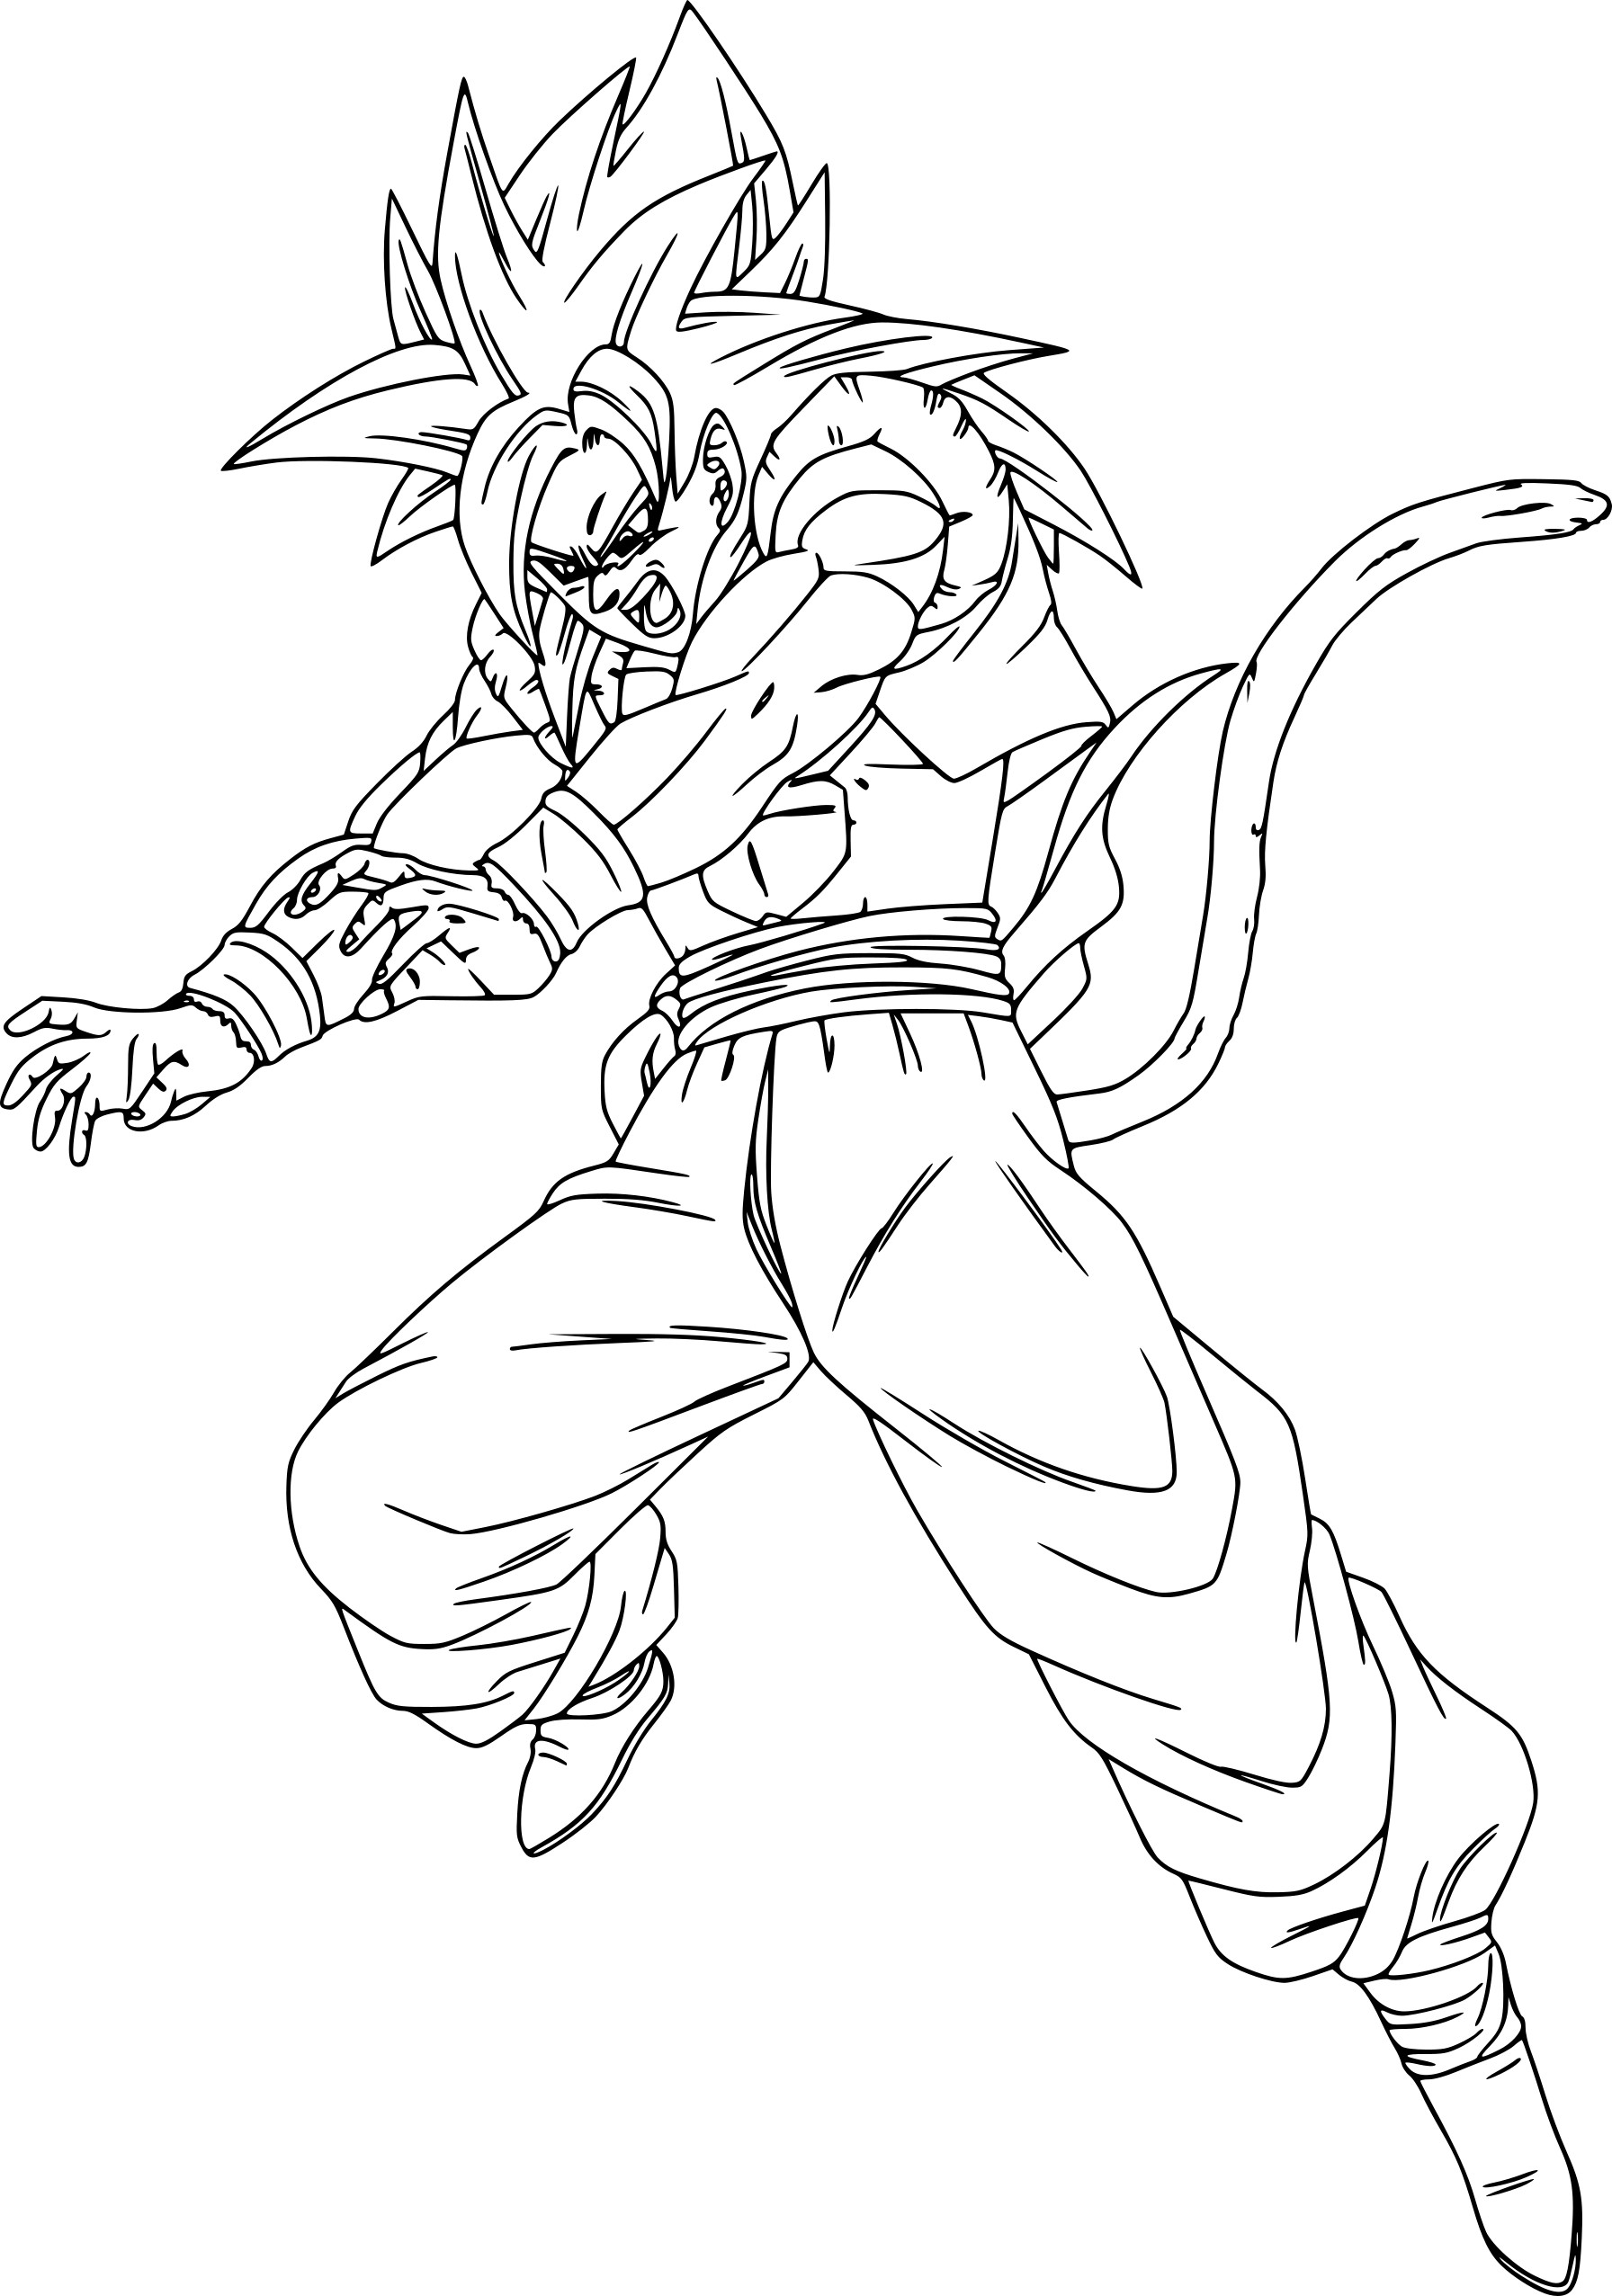 Meilleur de dessin a imprimer dragon ball super - Coloriage dragon ball z sangoku ...